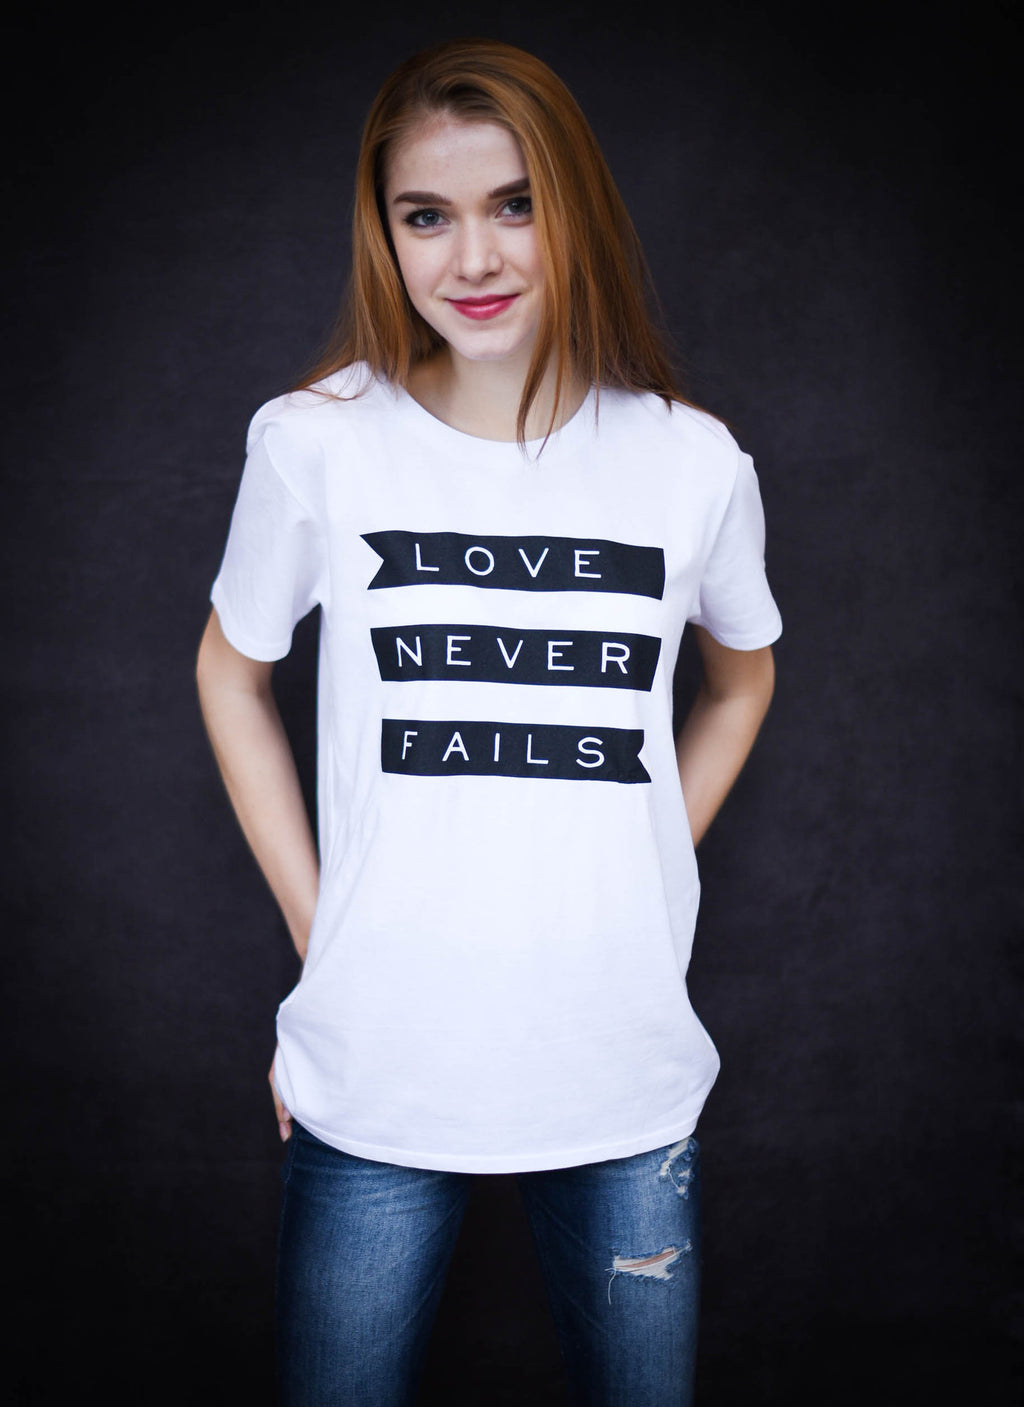 Love Never Fails - Ethical Slim Cut Combed Organic Cotton Women's T-Shirt